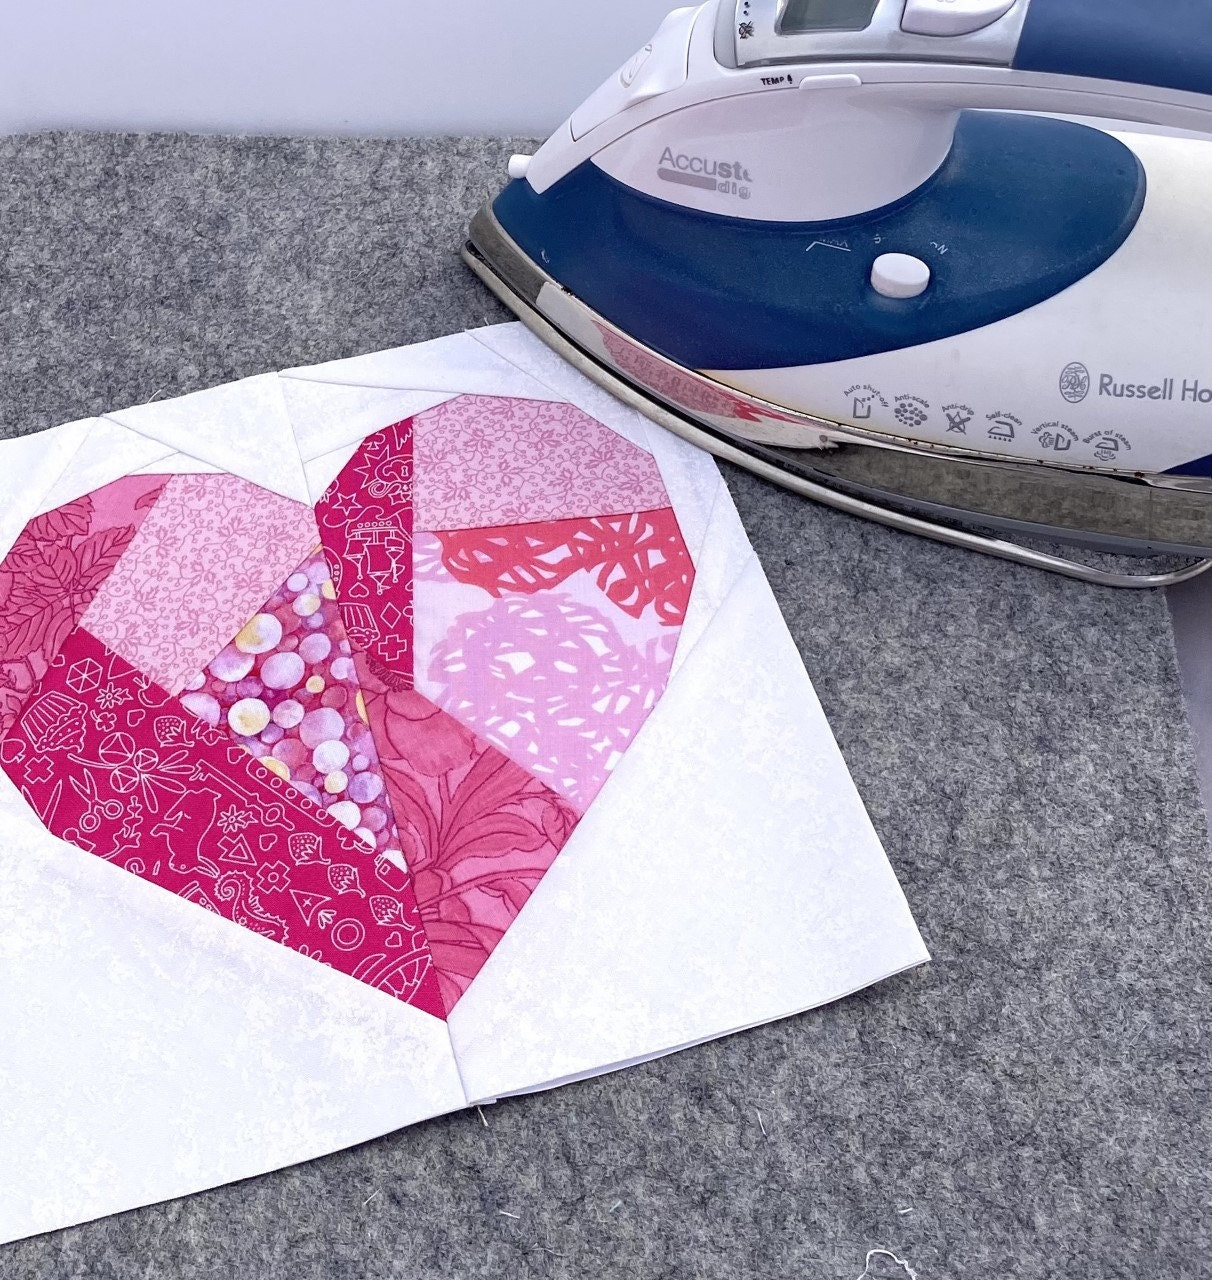 A beautiful foundation paper pieced heart being pressed by an iron before setting into a quilt.